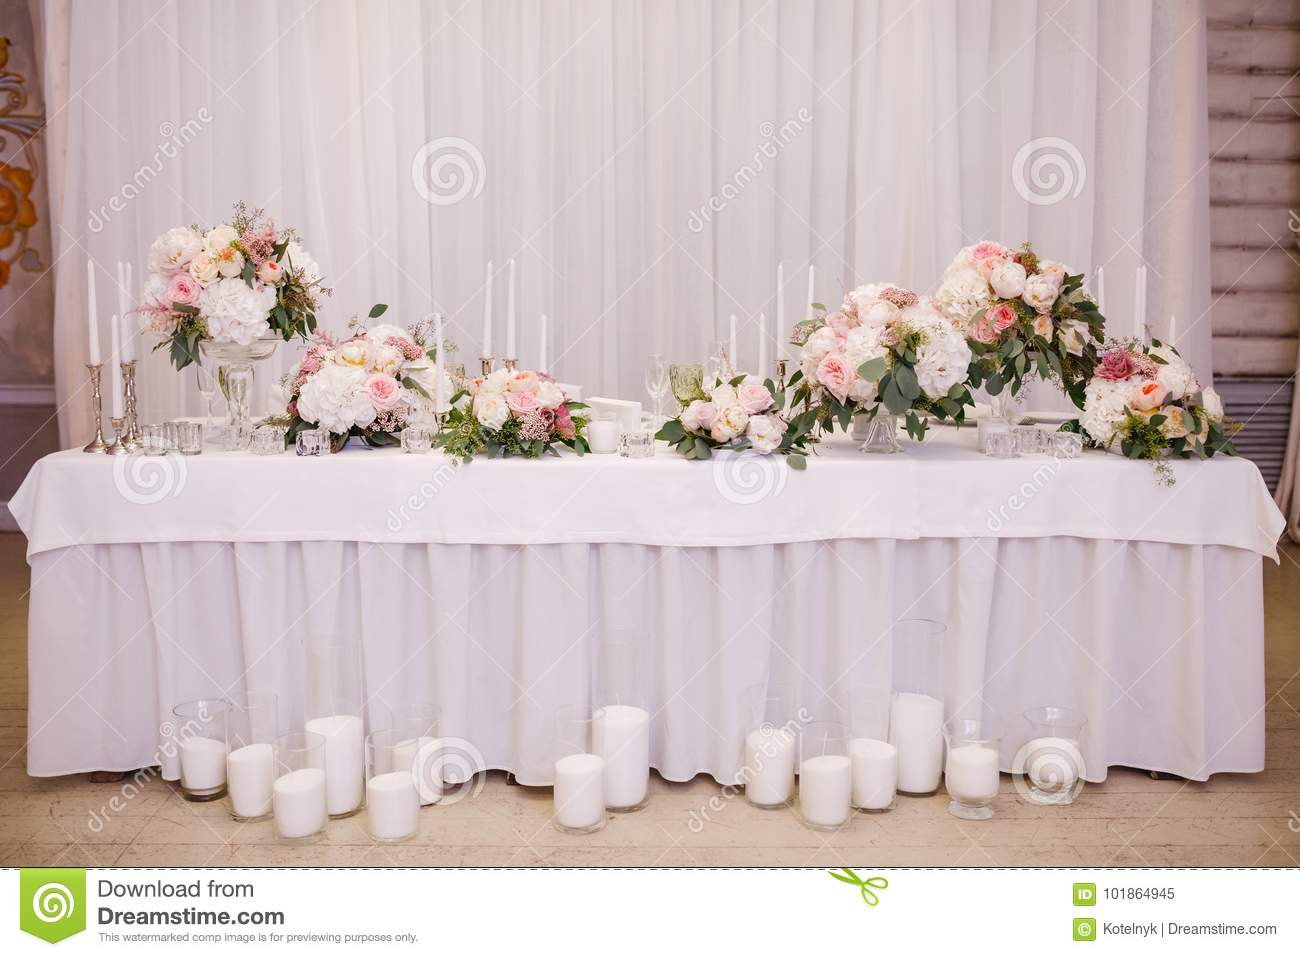 Table decor with white flowers and candles for a wedding party stock table decor with white and pink flowers and candles for a wedding party in a restaurant mightylinksfo